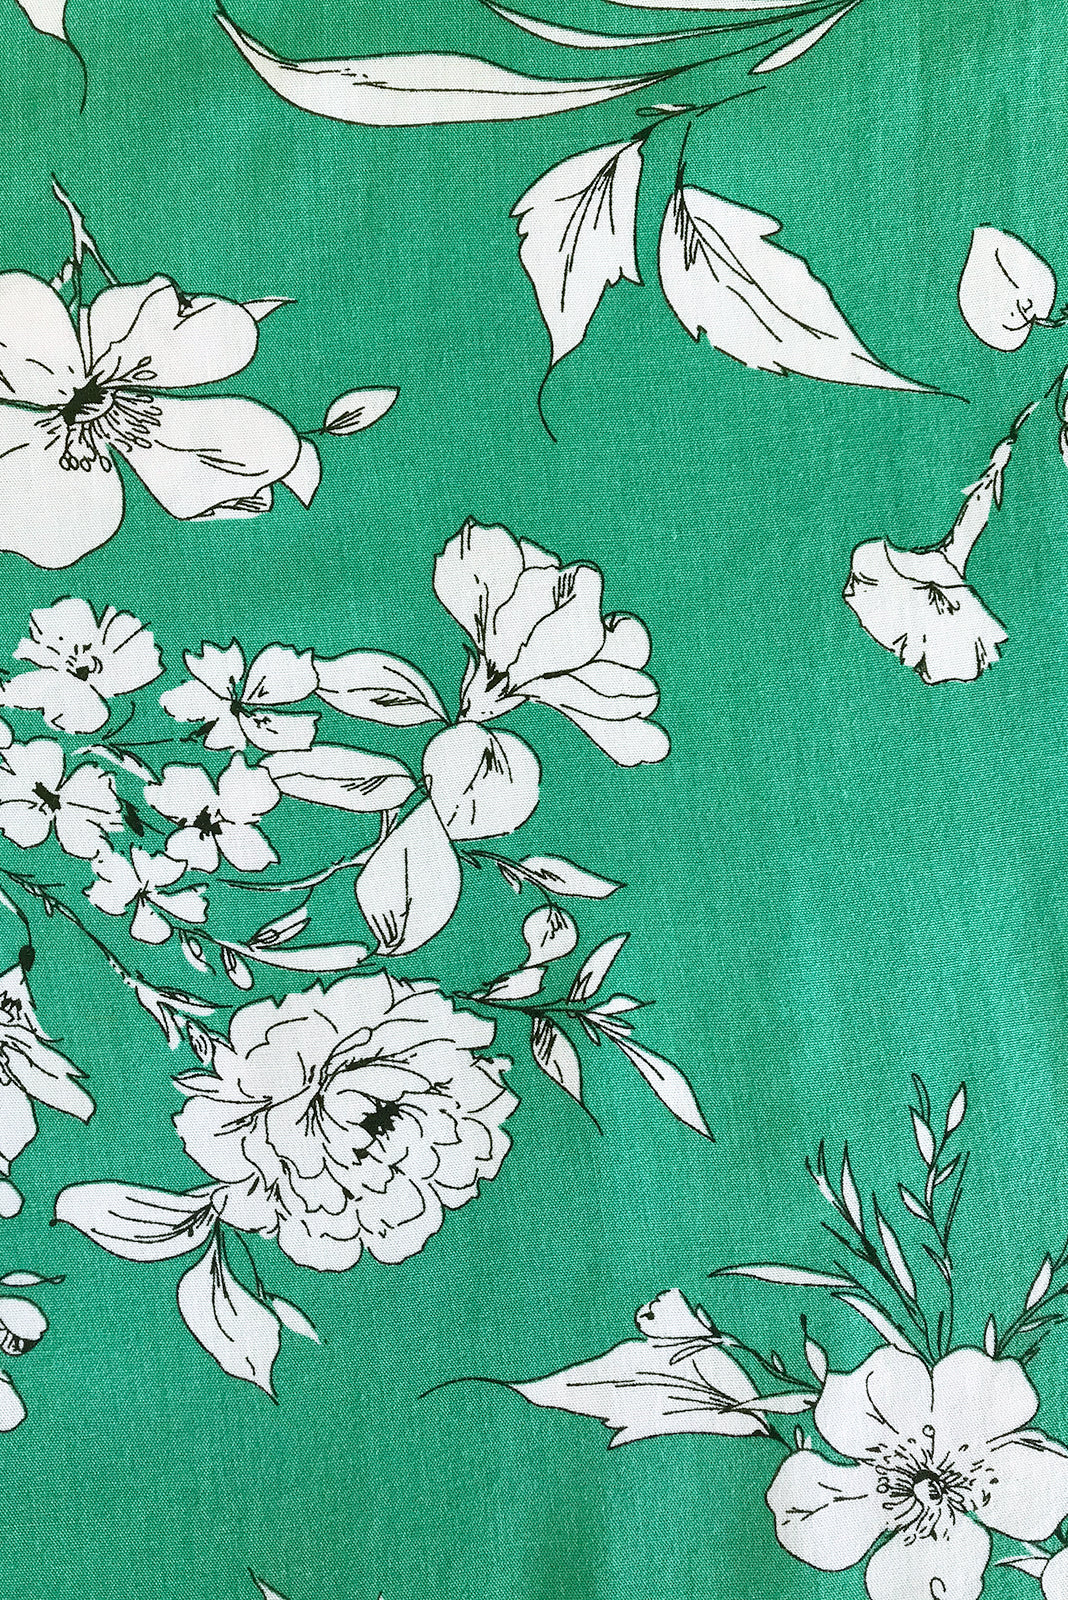 Fabric Swatch of Lizzie Mono Meadow Dress featuring 100% rayon in soft, shamrock green base with white floral print.